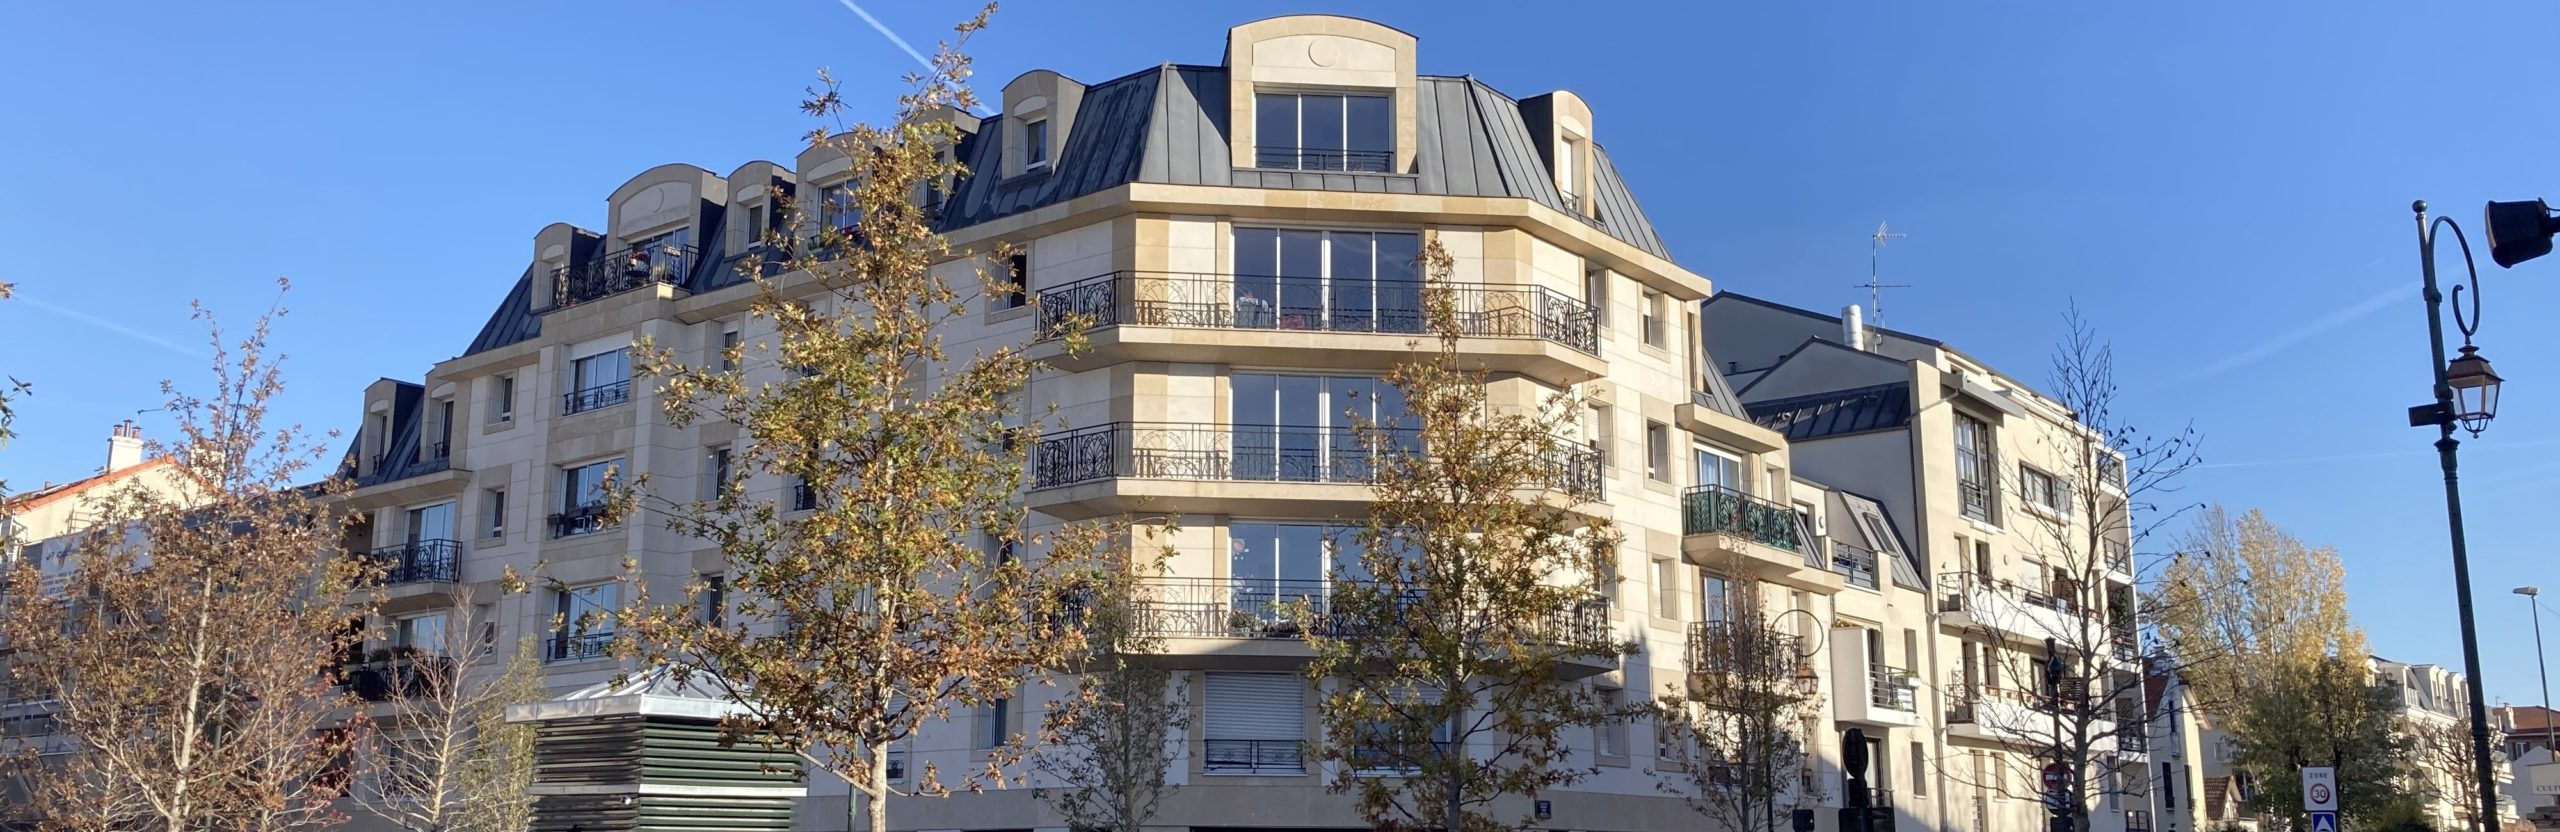 Chasseur Immobilier La Garenne Colombes